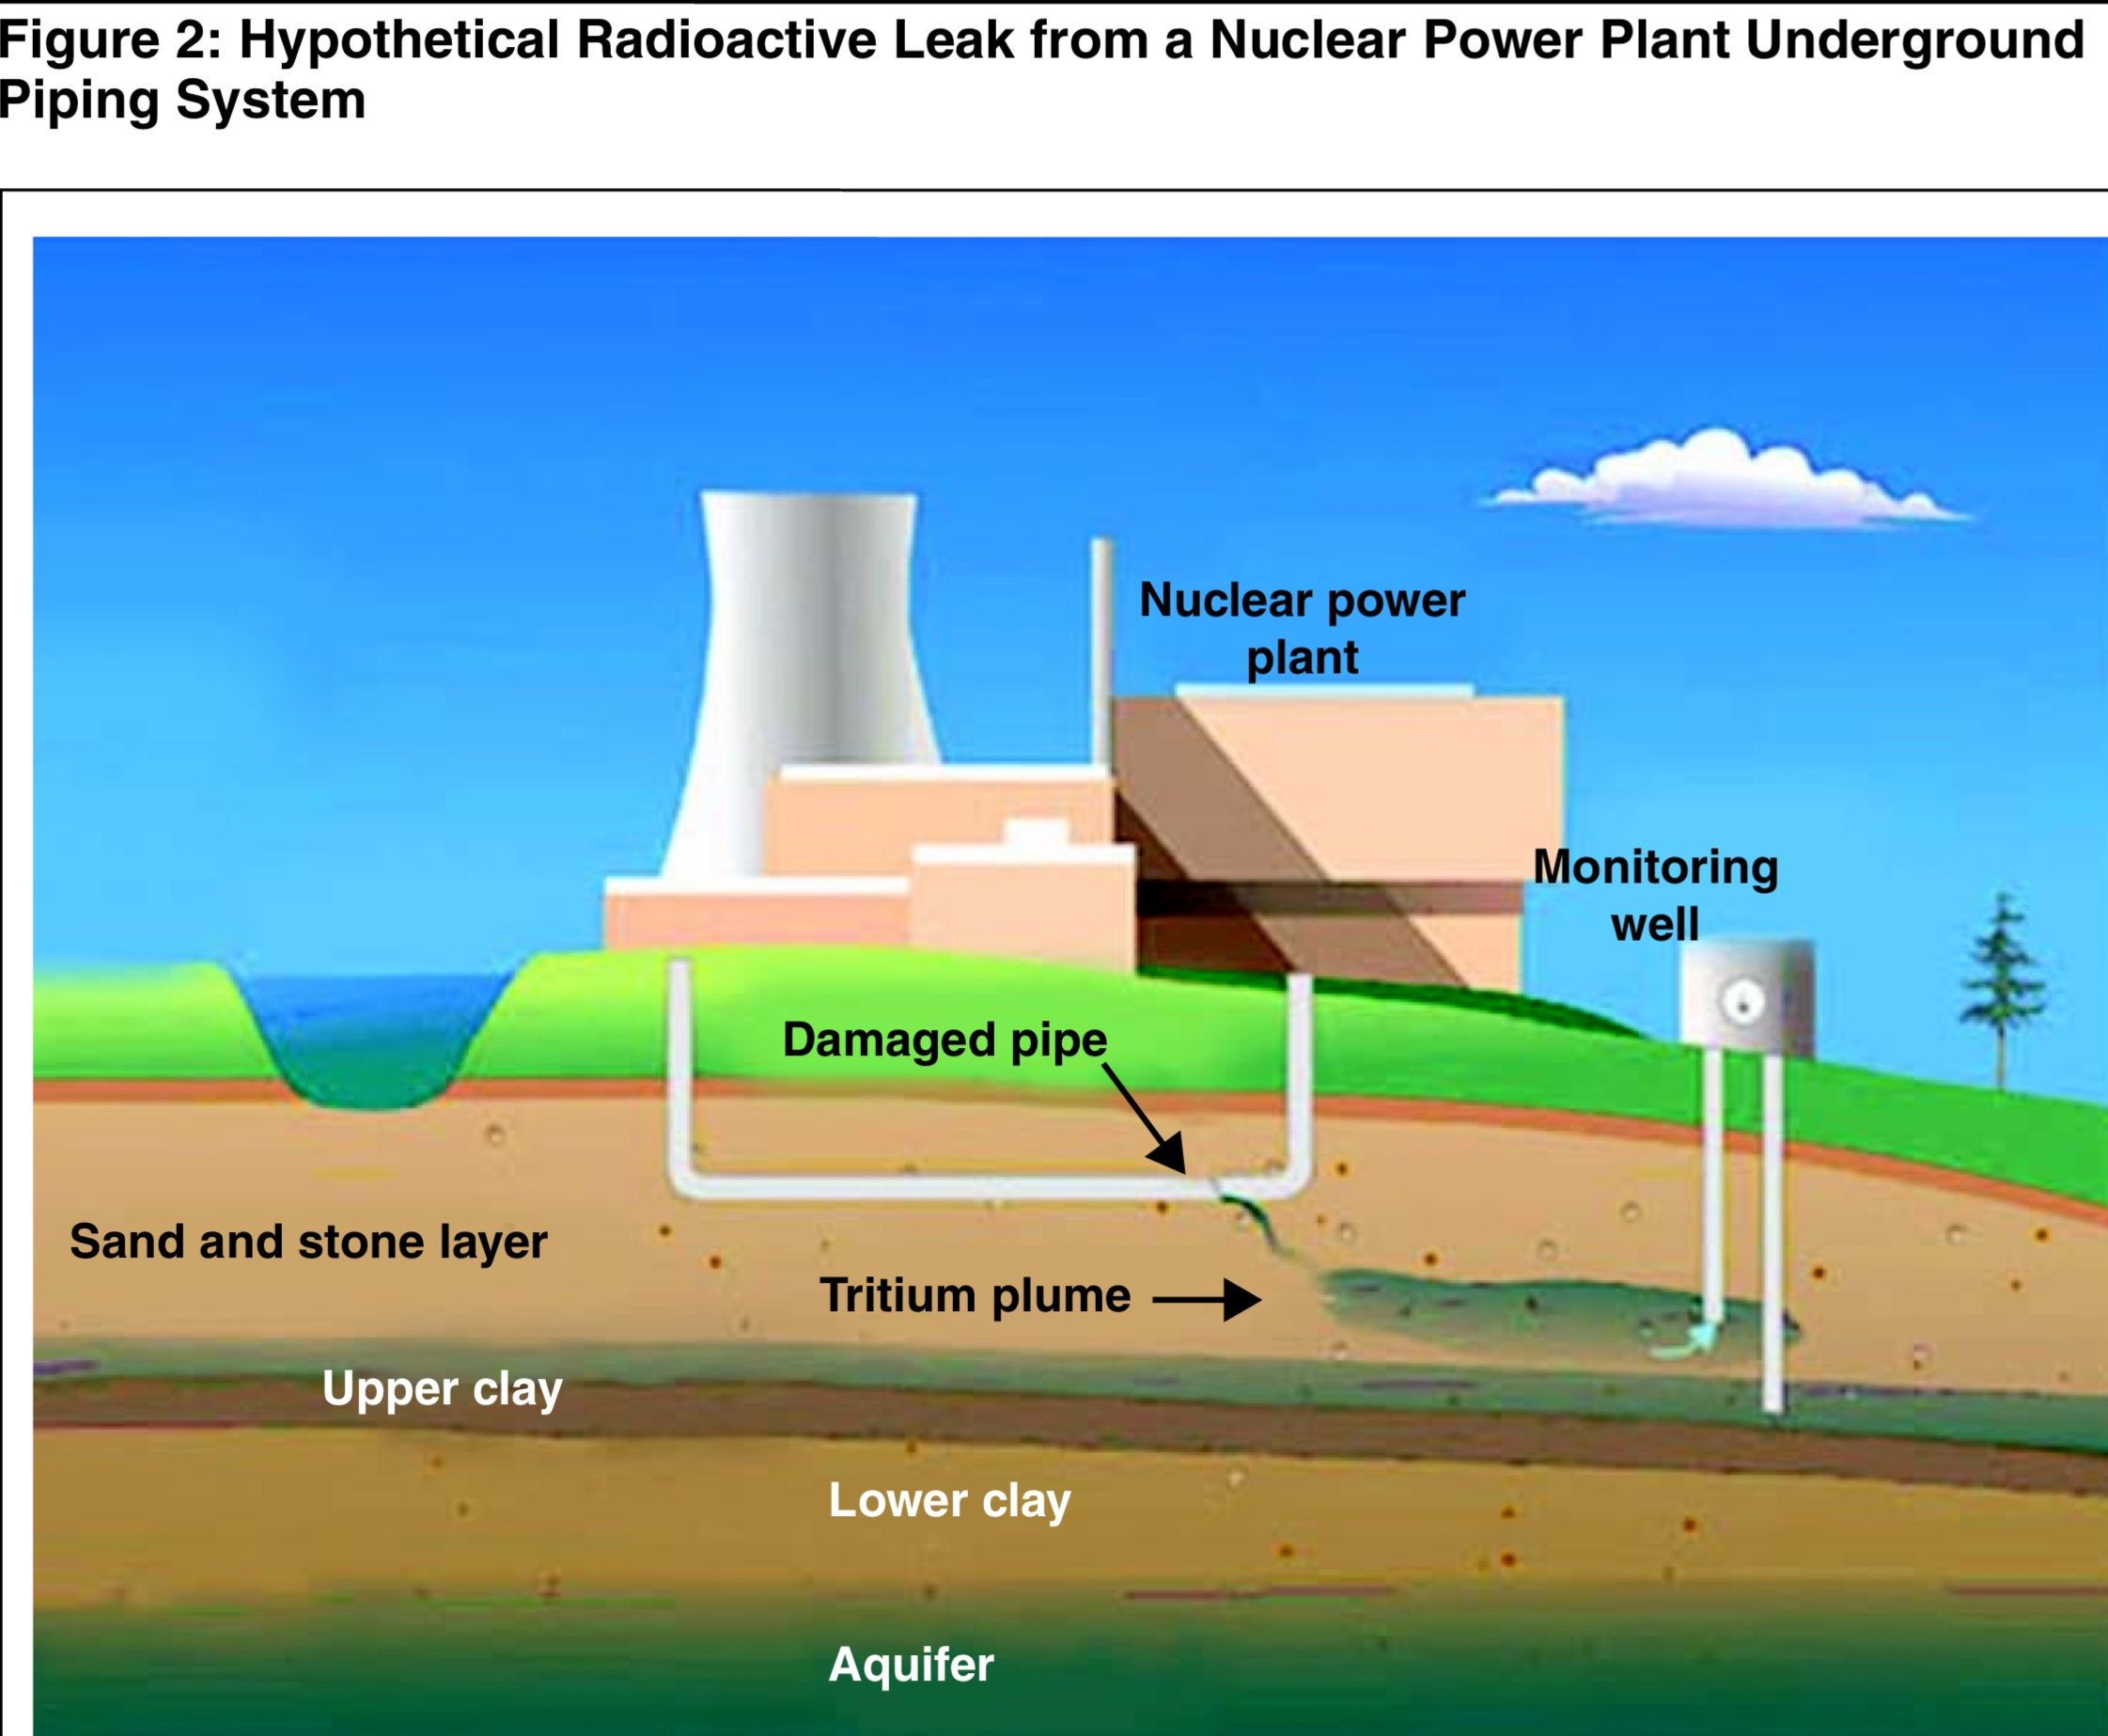 Radioactive groundwater contamination found at all us nuclear radioactive groundwater contamination found at all us nuclear power stations pipe failures endanger nuclear power station cooling systems environment ccuart Image collections